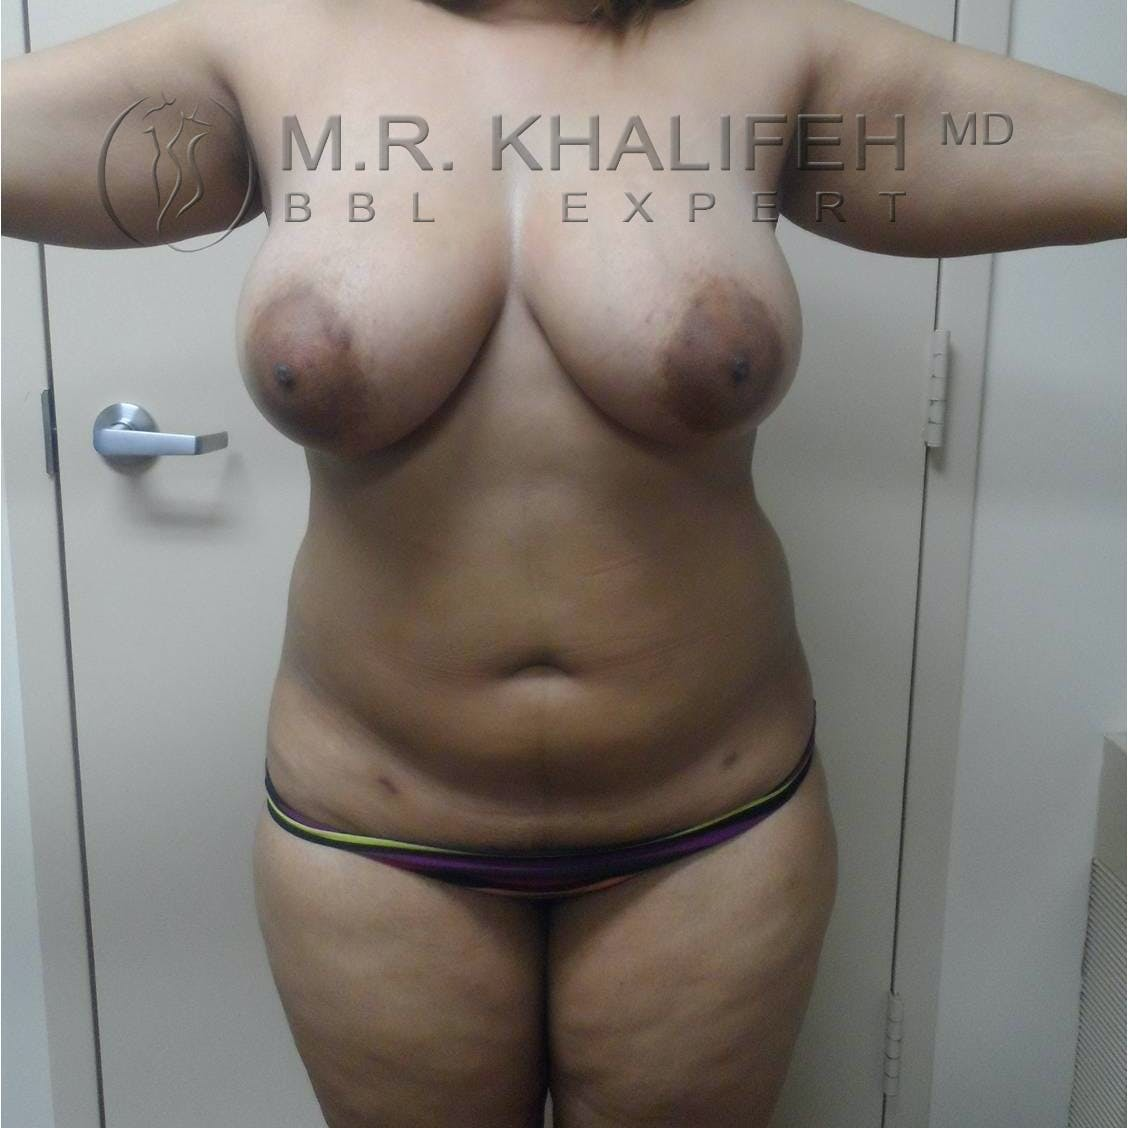 Flank-Lower Back Liposuction Gallery - Patient 3719190 - Image 7